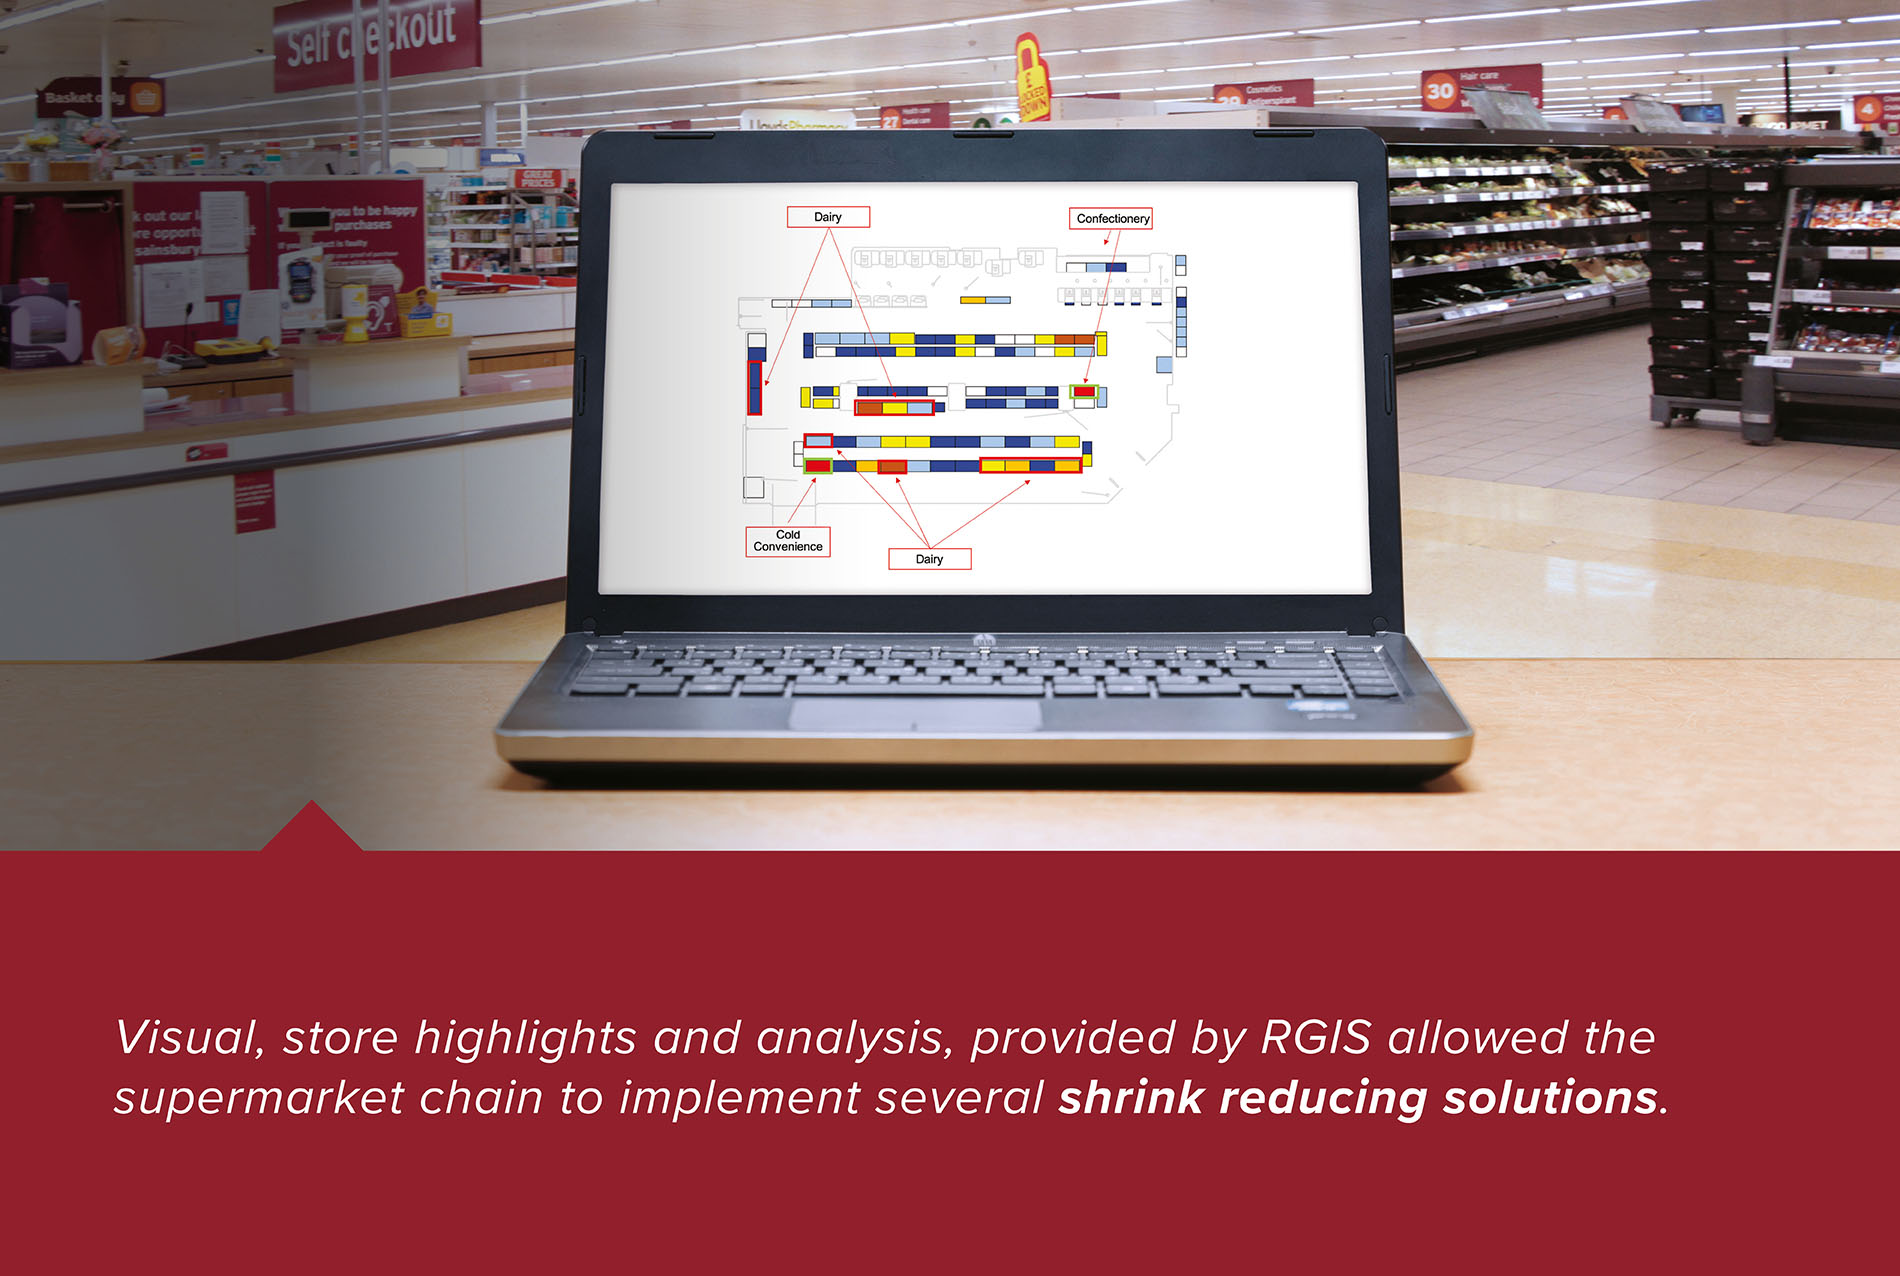 Visual store insights on a laptop